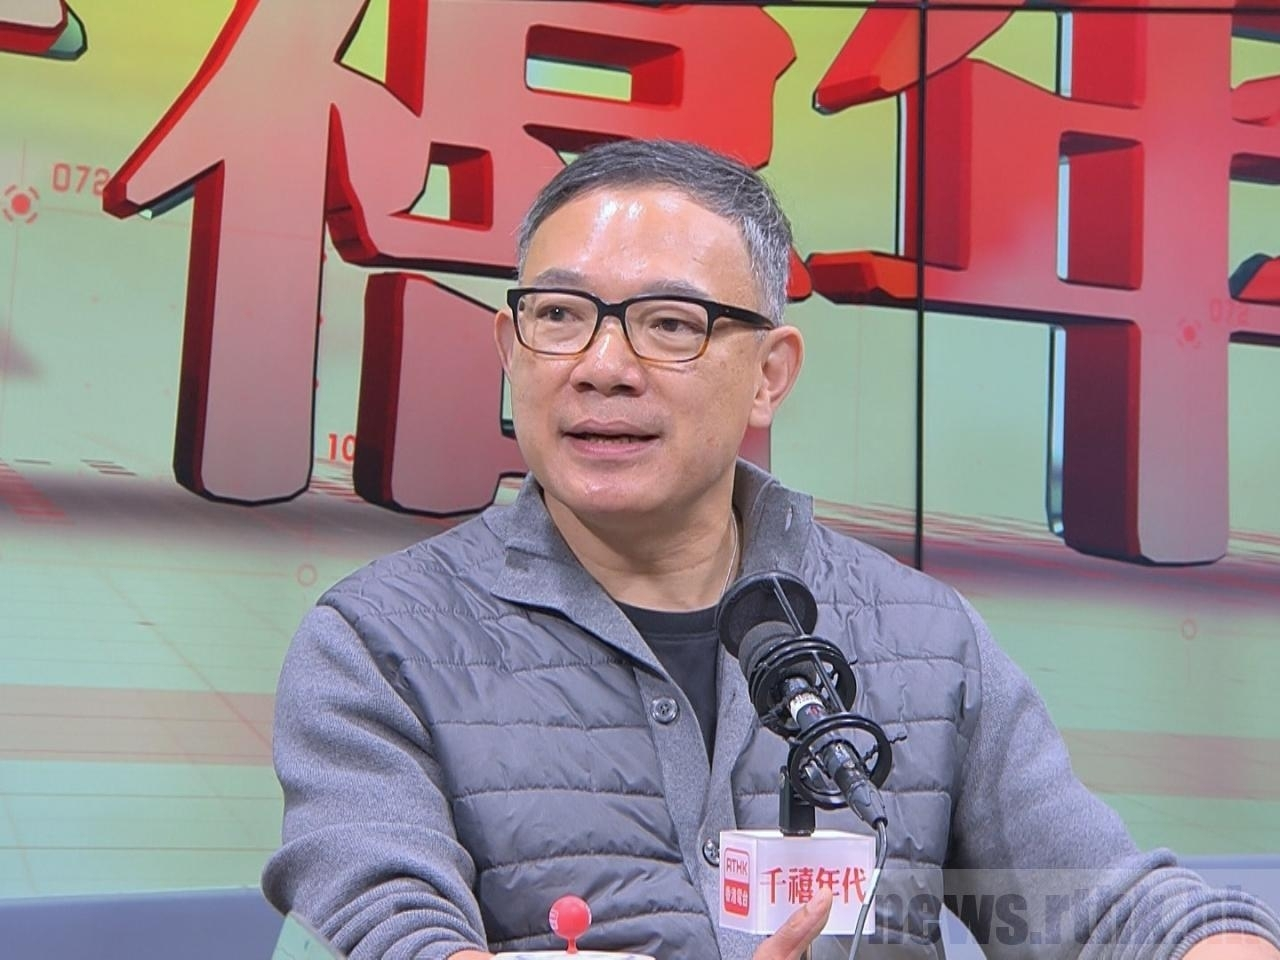 """Pro-establishment legislator Paul Tse says councillors who are disqualified for """"minor mistakes"""" should not give up serving the society as they could still take part in Legco elections one day. File photo: RTHK"""